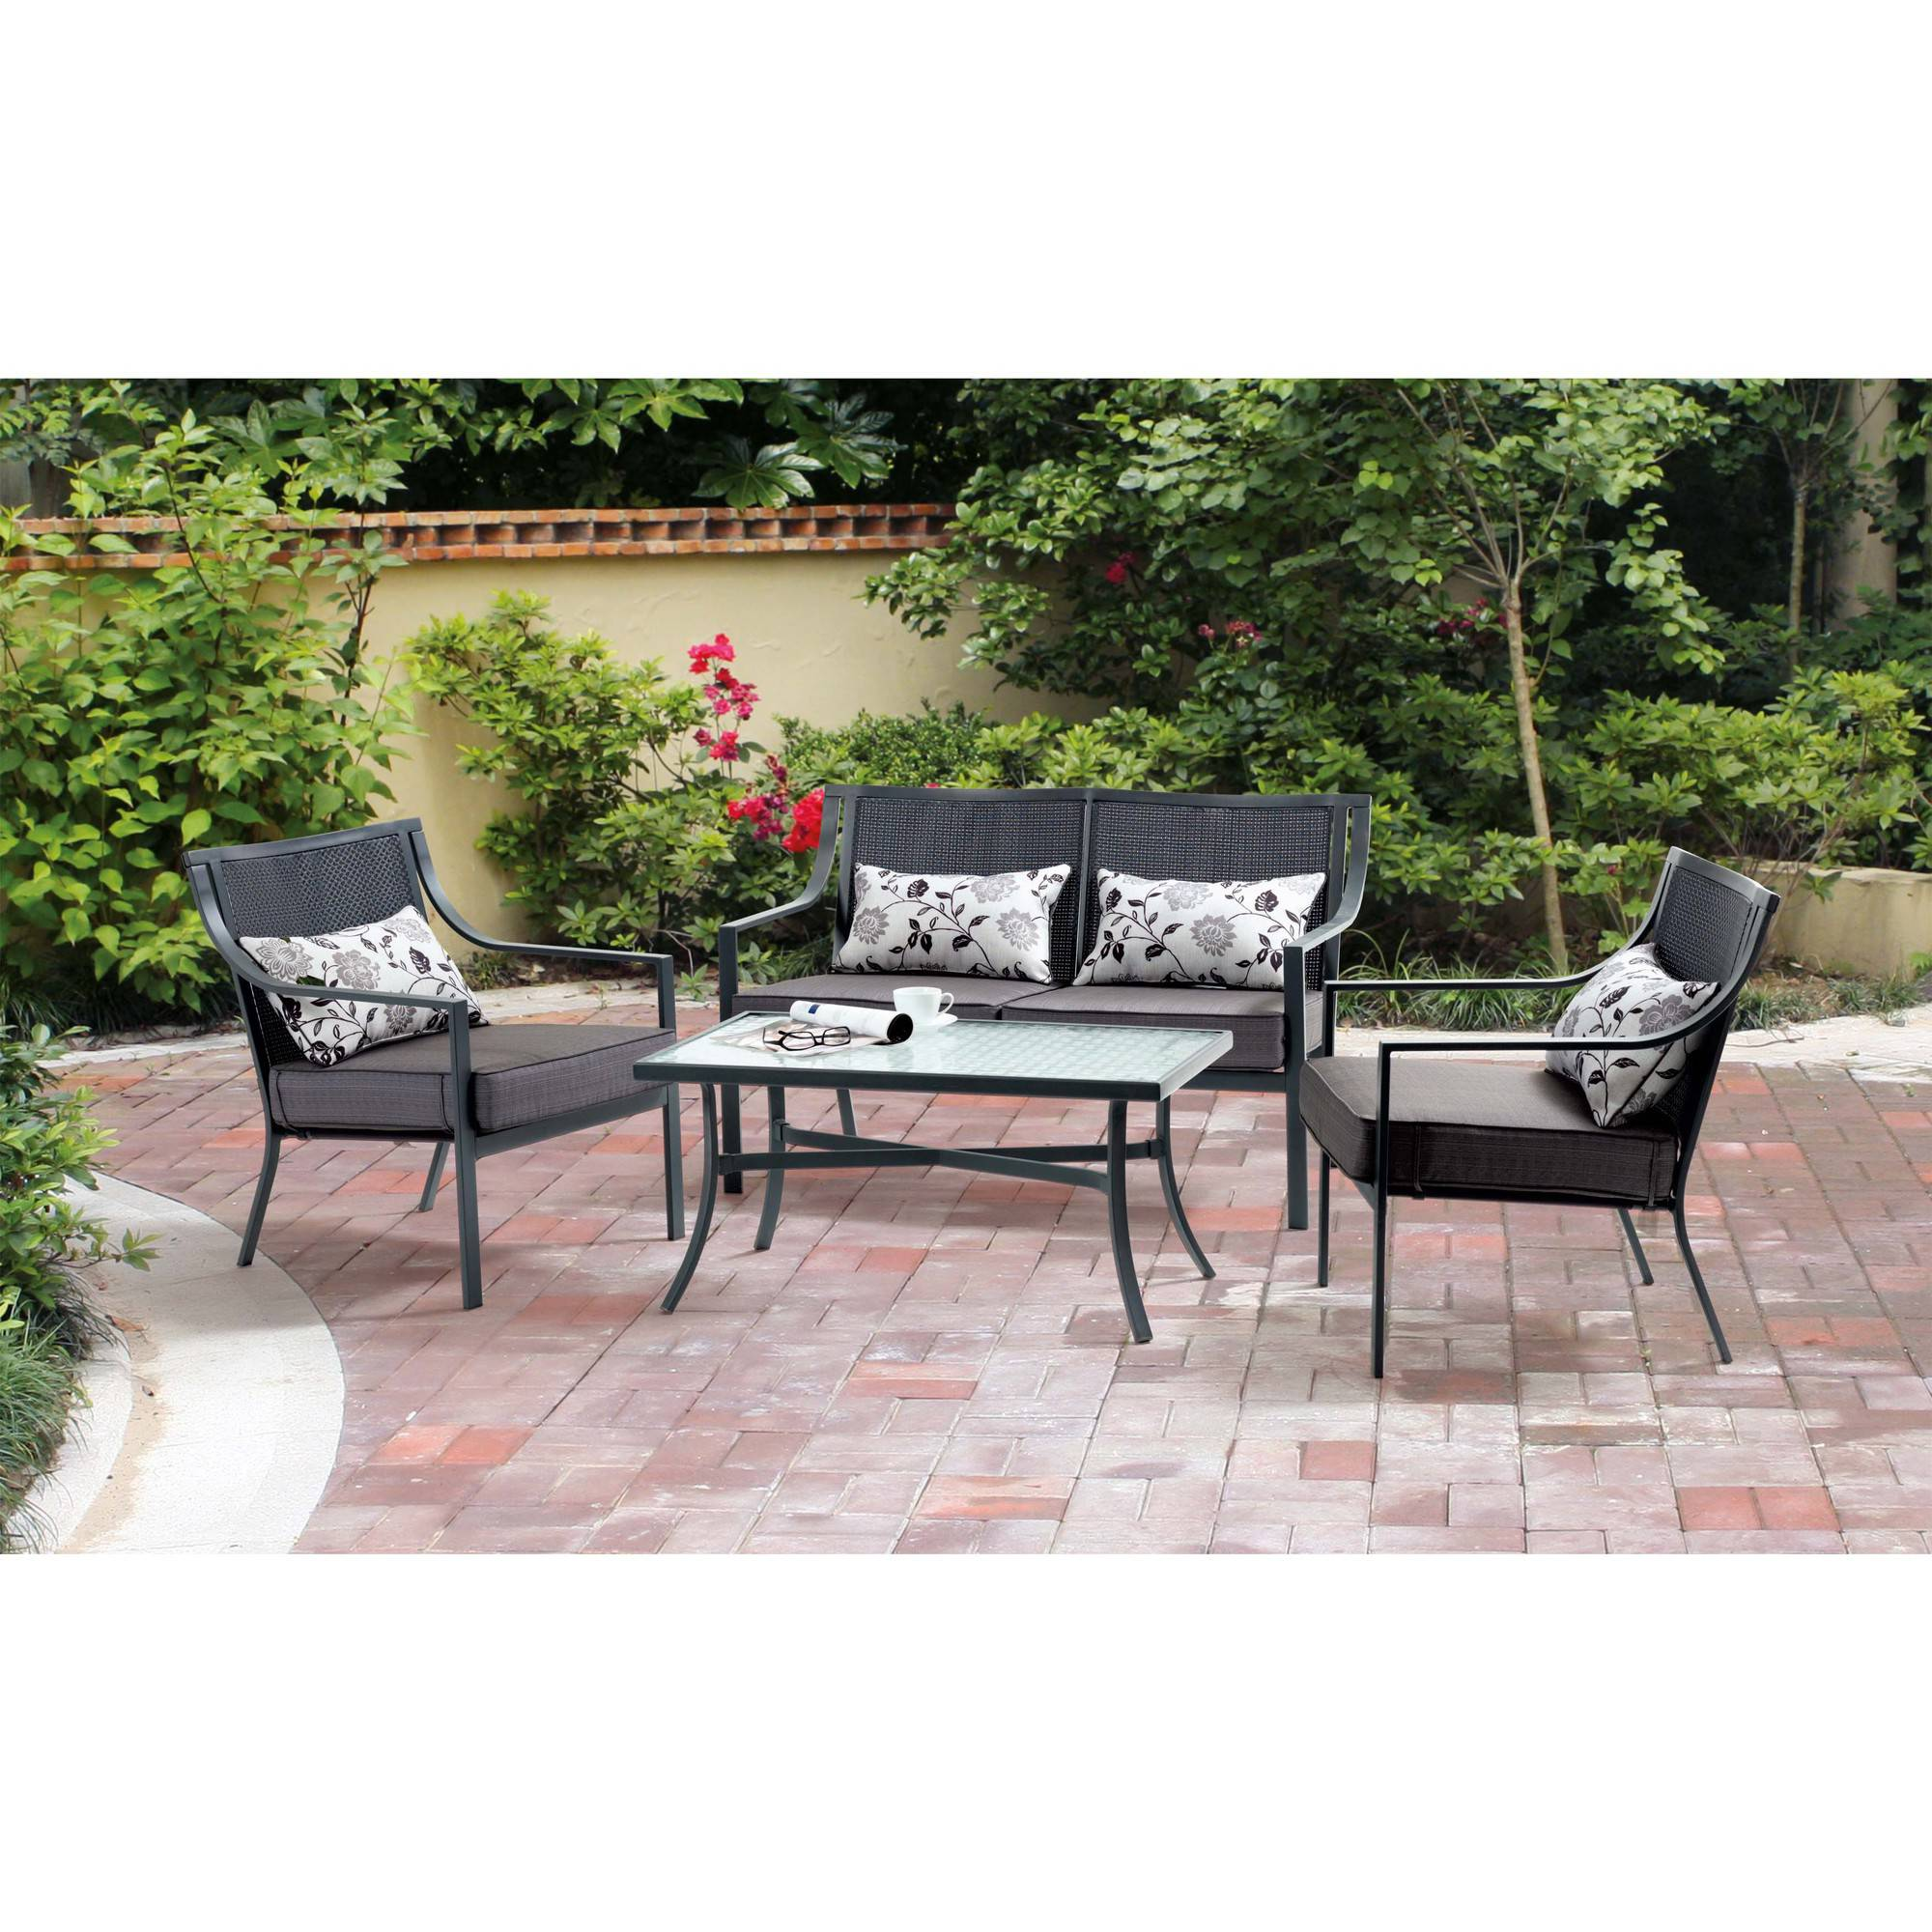 4 Piece Mainstays Square Patio Conversation Set